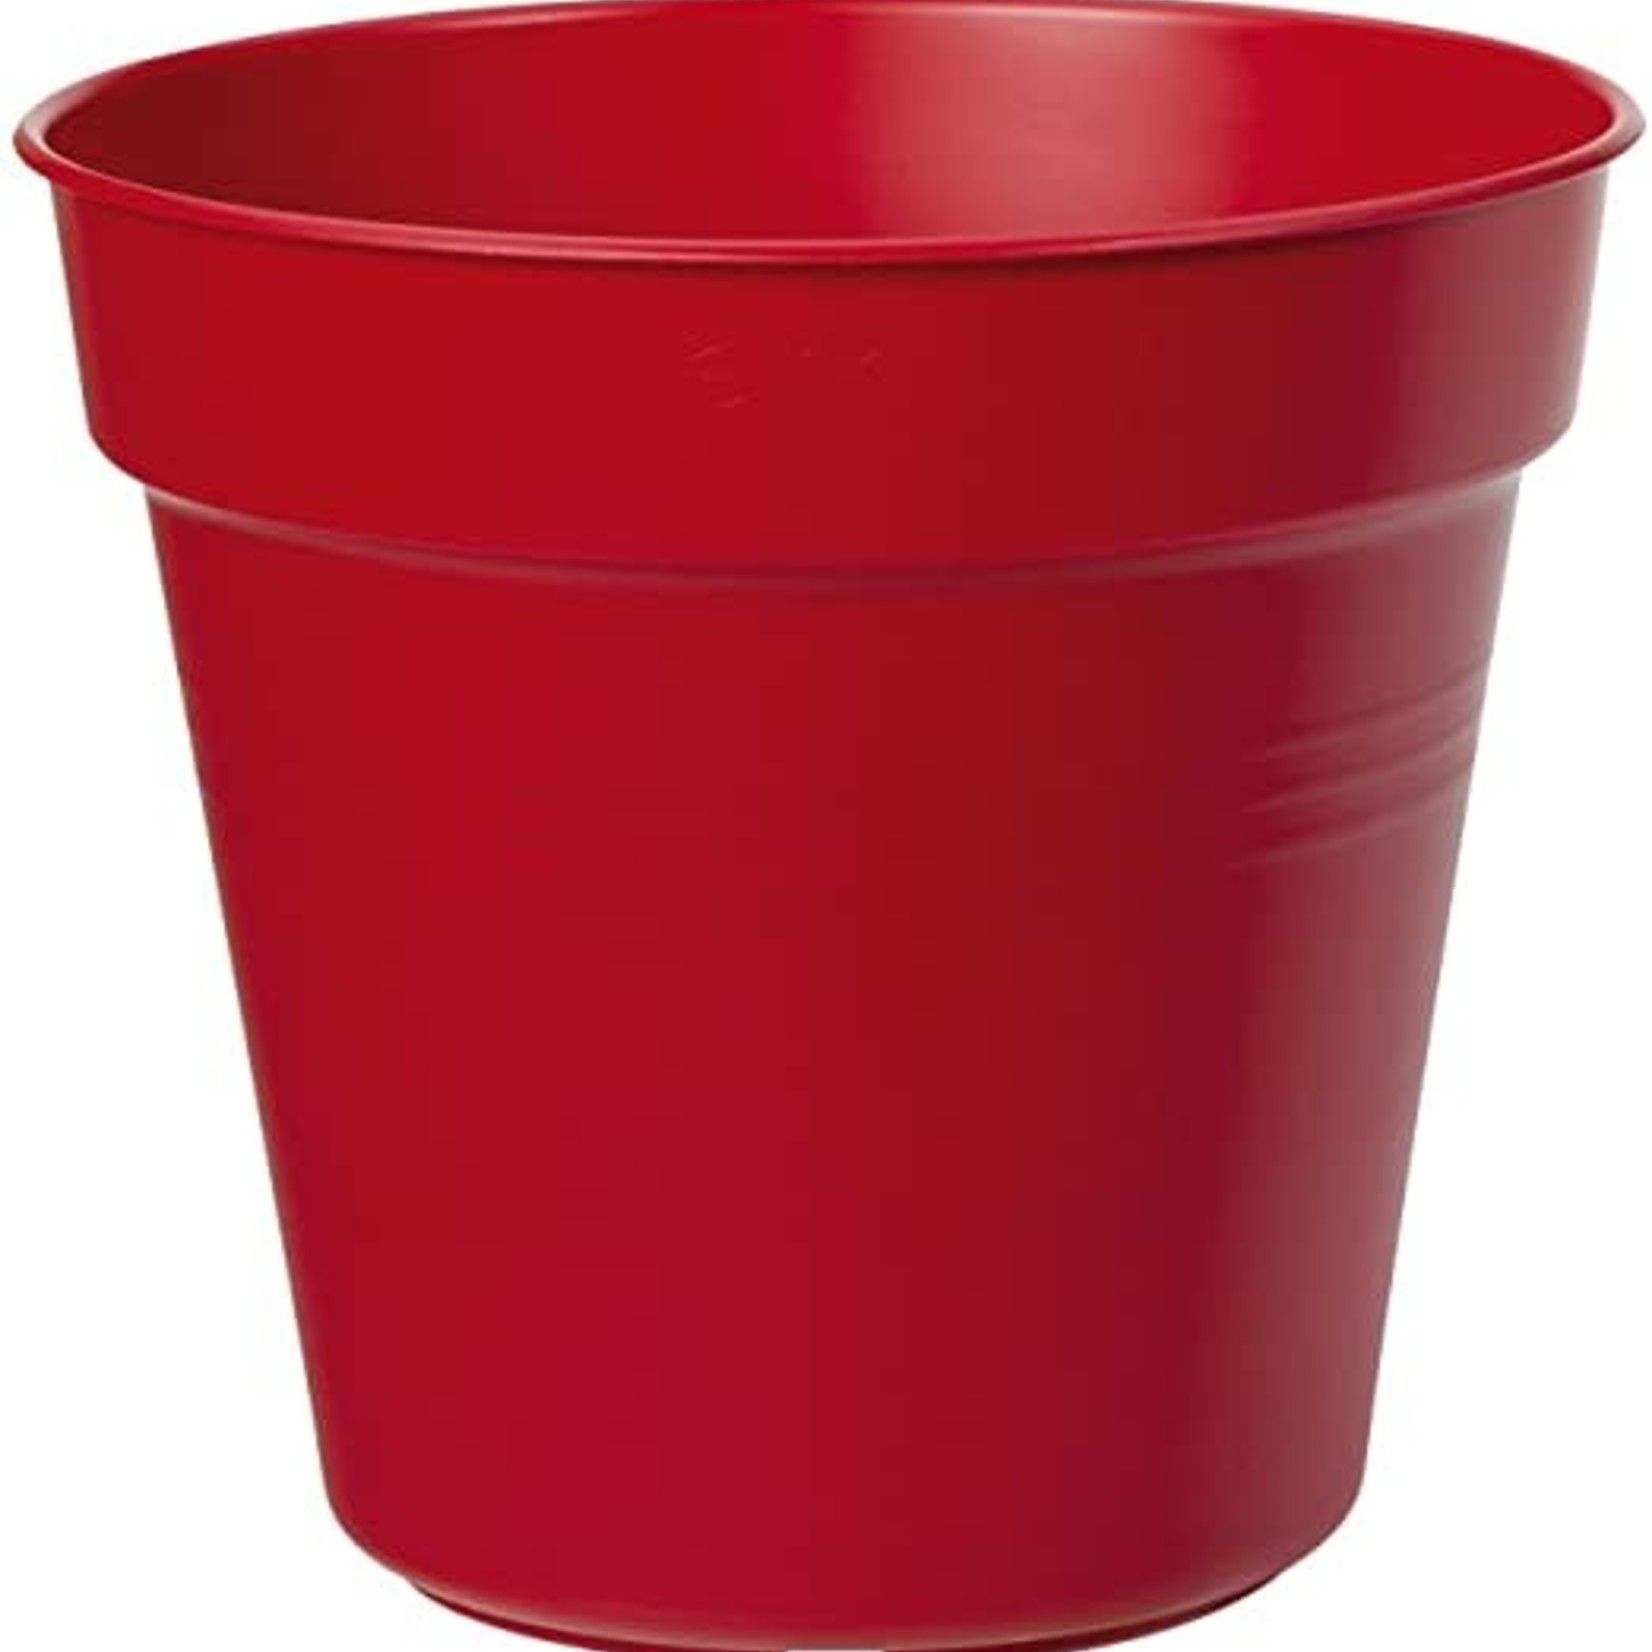 Elho ELHO GROW POT 30CM LOVELY RED